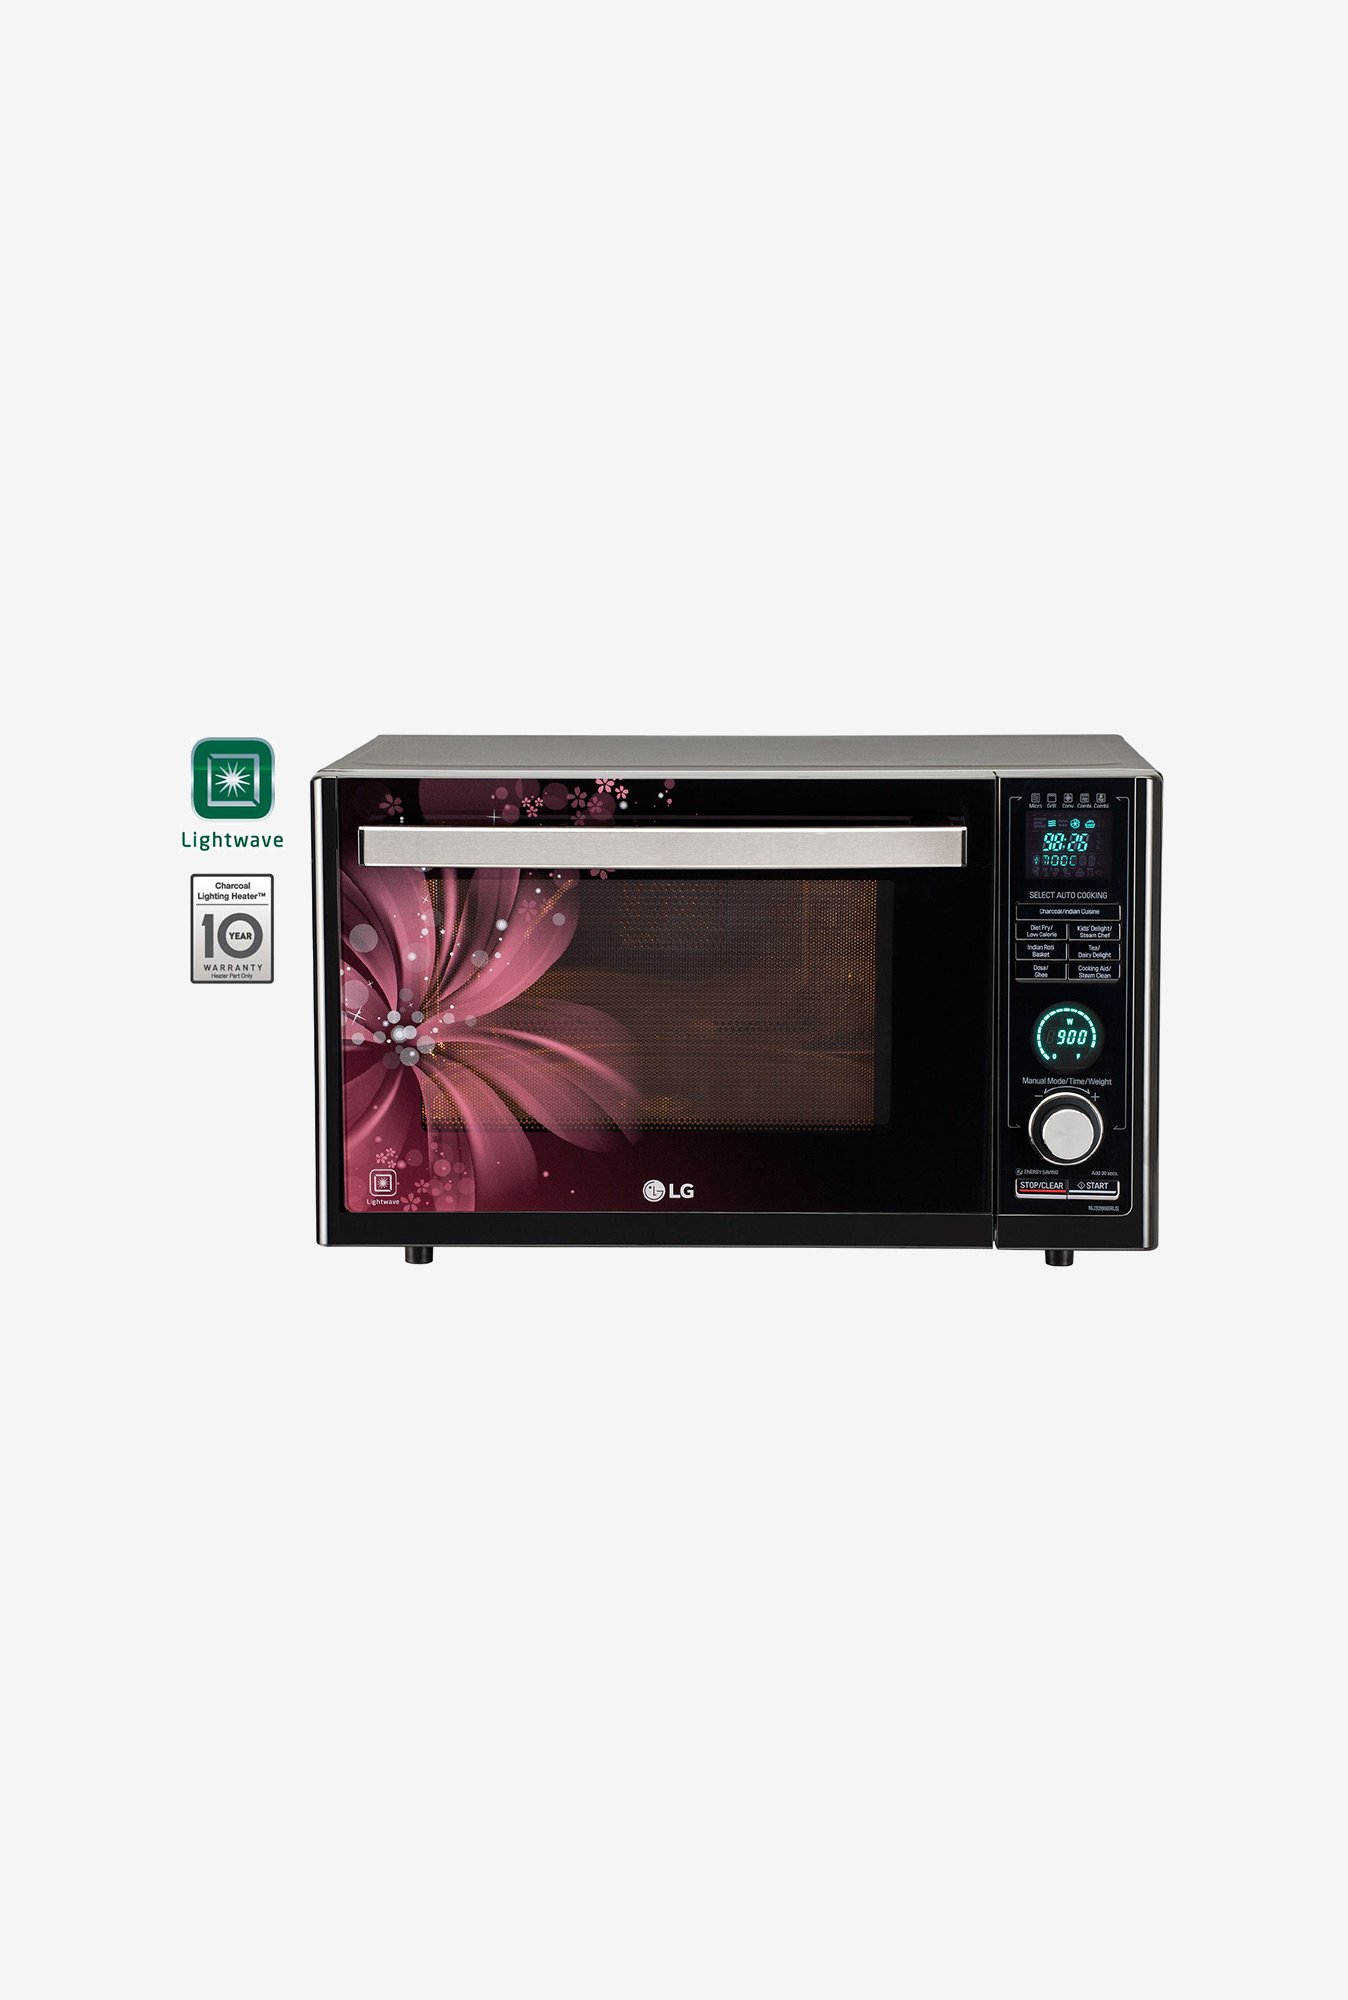 LG MJ3286BRUS 32L Convection Microwave Oven